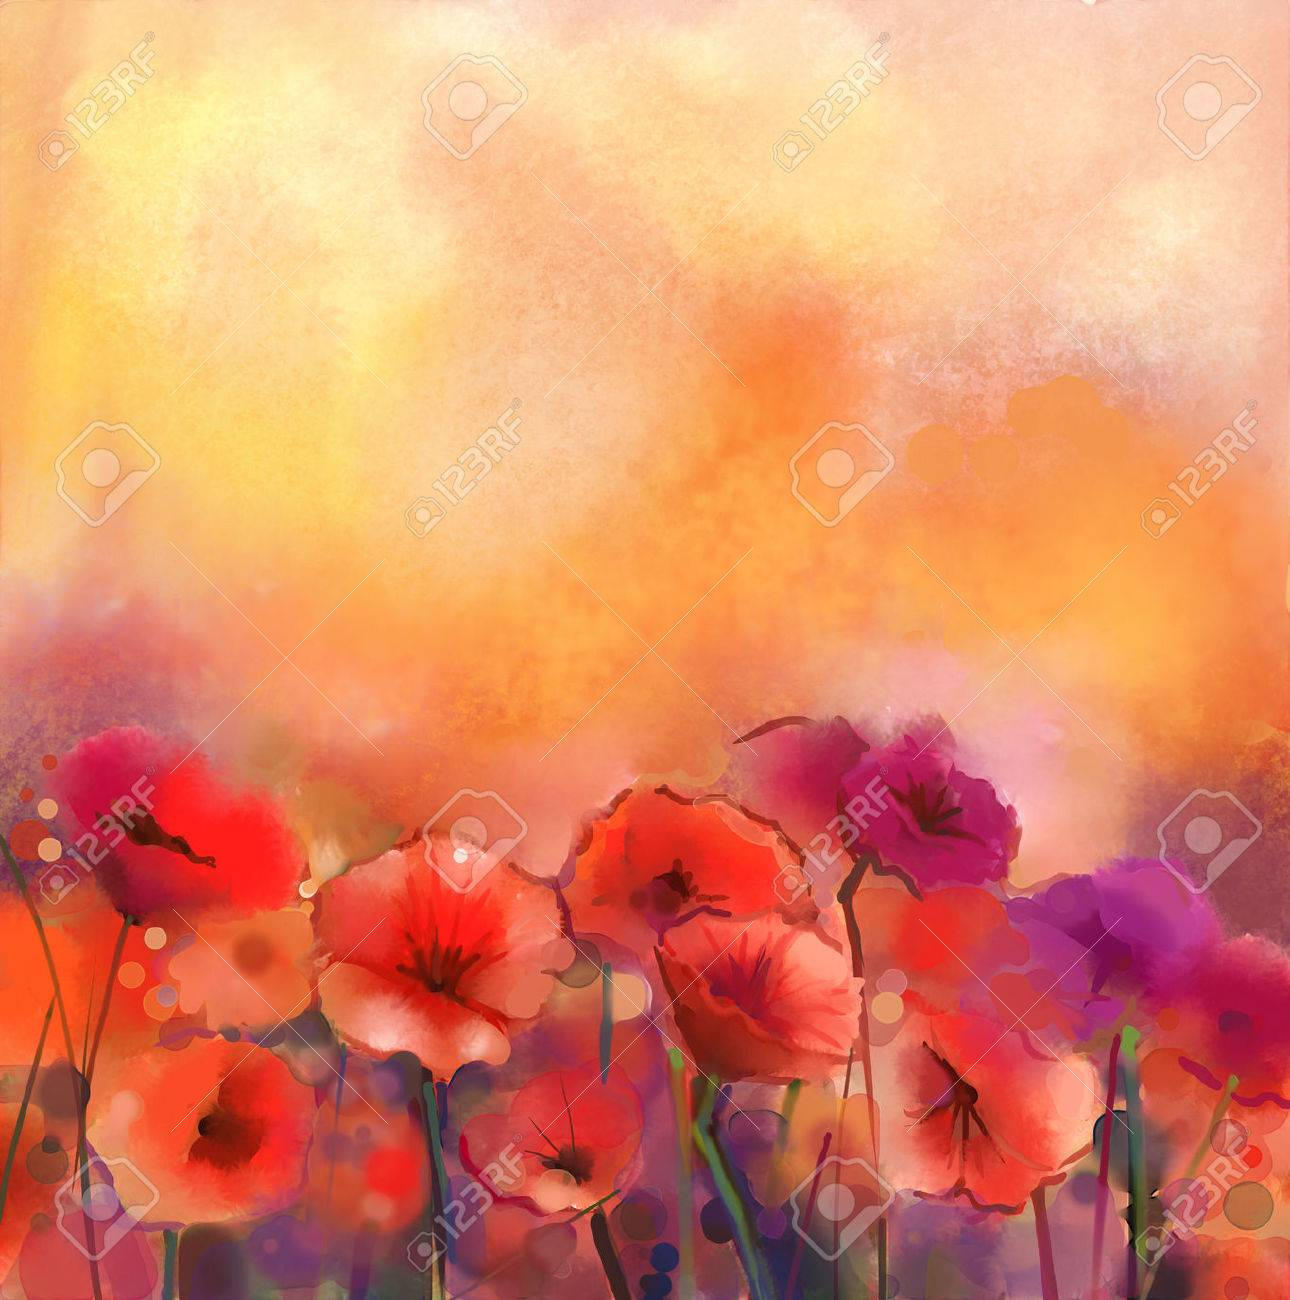 Watercolor red poppy flowers painting flower paint in soft color stock photo watercolor red poppy flowers painting flower paint in soft color and blur style yellow and orange background spring floral seasonal nature mightylinksfo